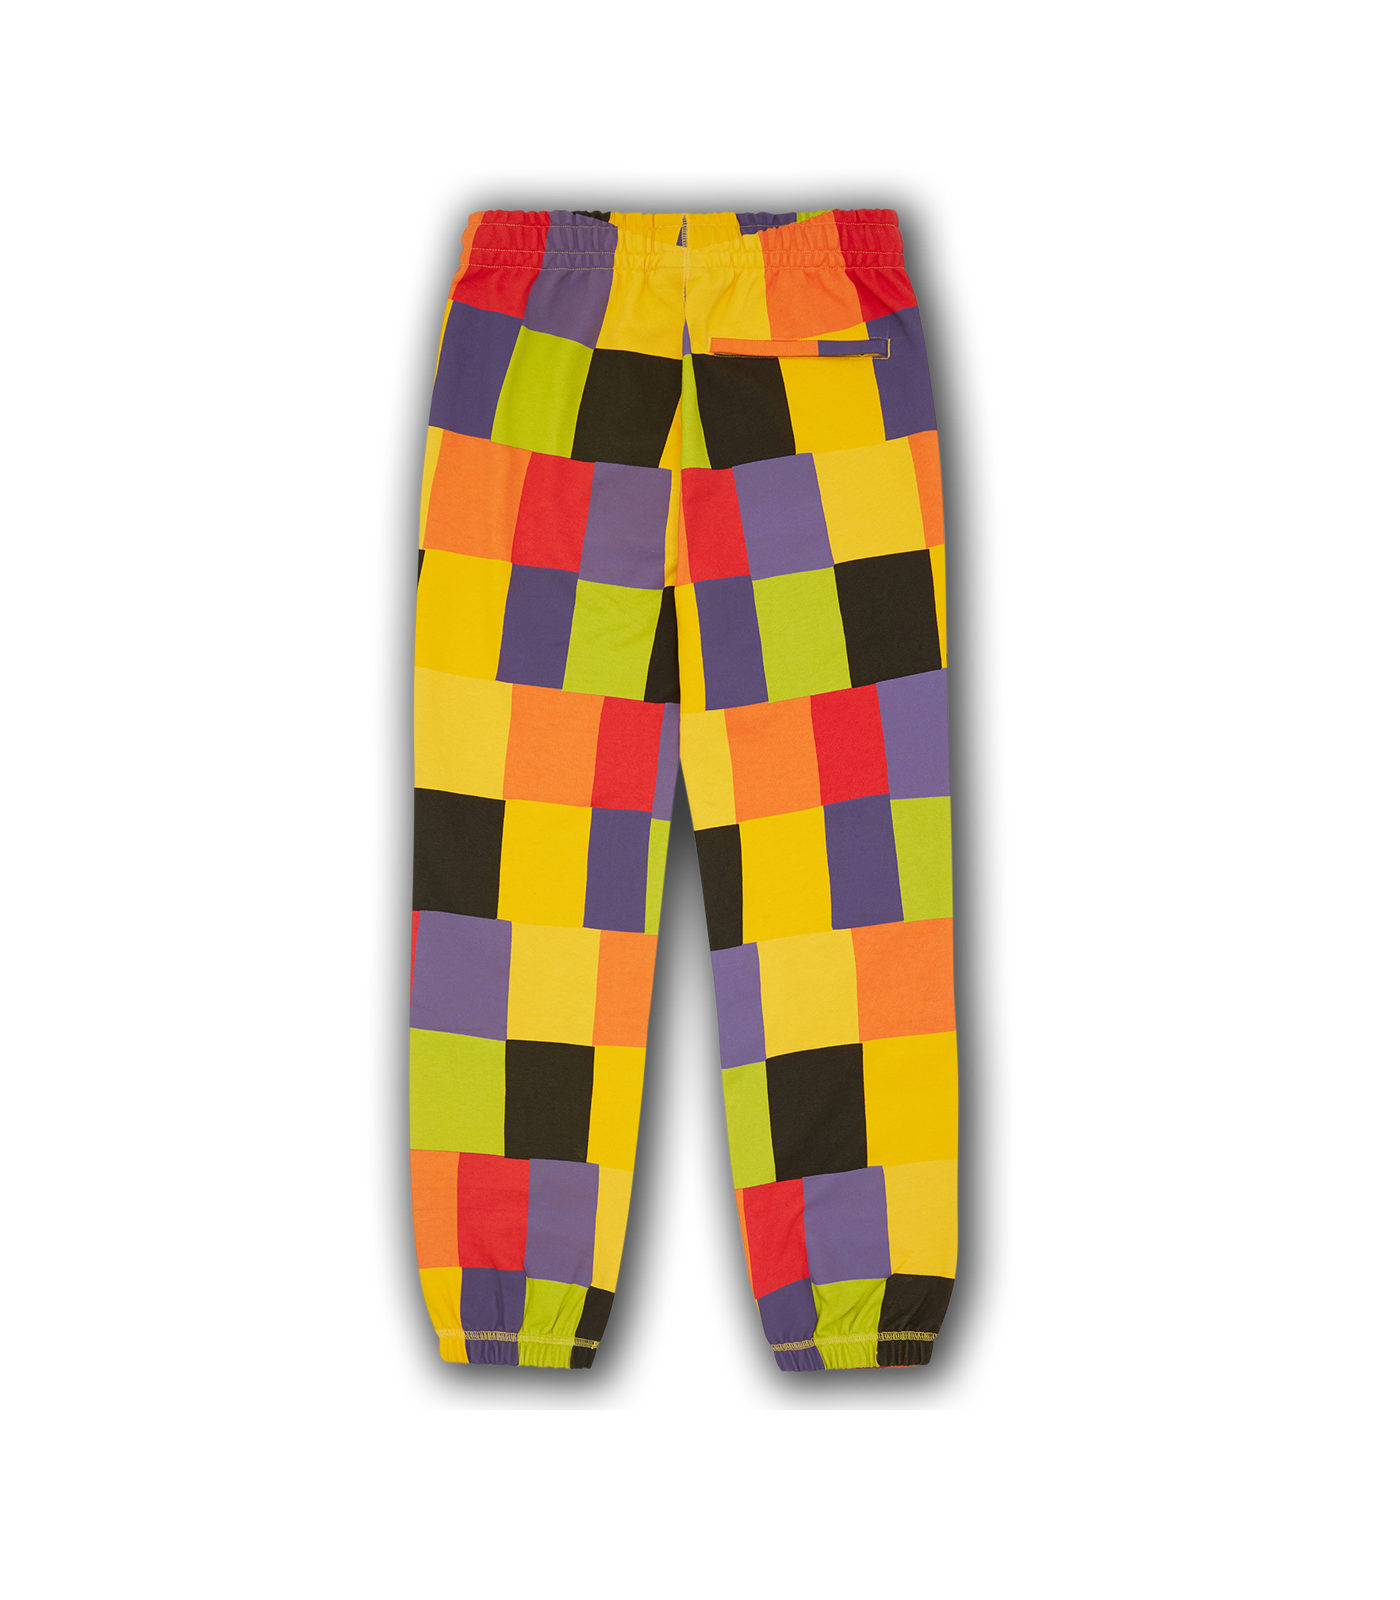 MULTICOLOUR PRINT SWEATPANTS